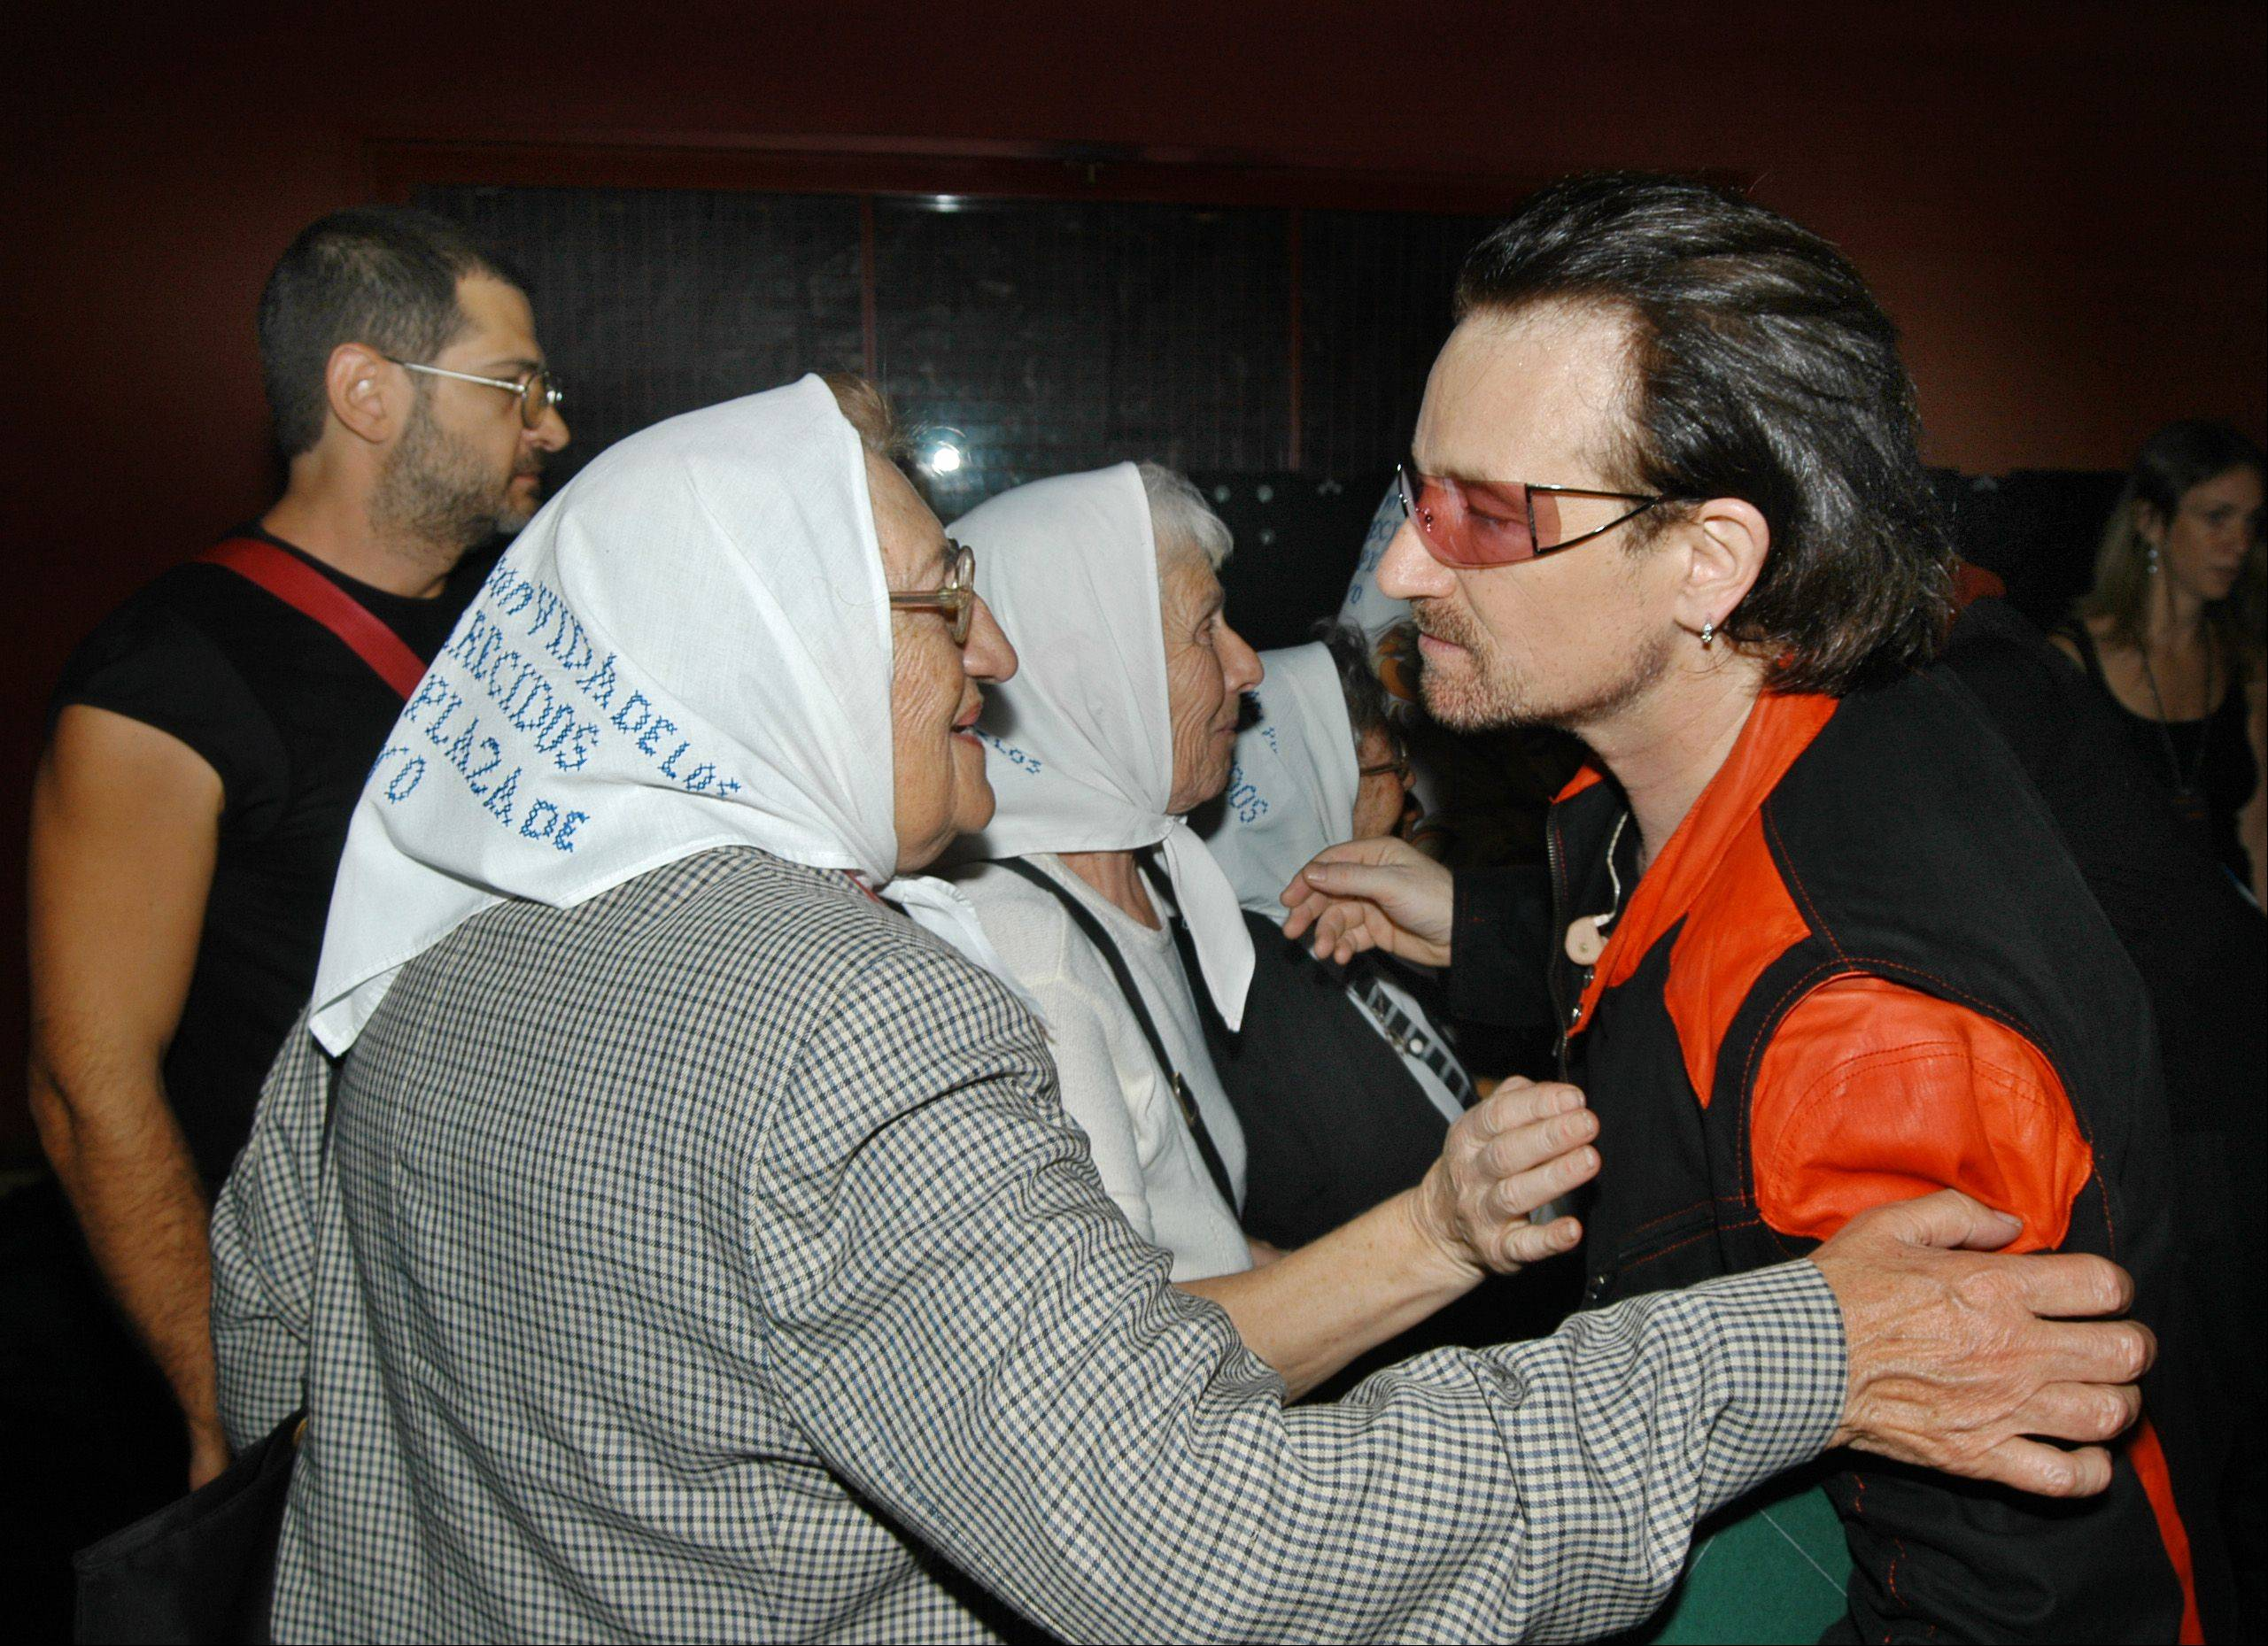 Bono greets some of the Mothers of the Plaza de Mayo at U2's final concert in Buenos Aires, Argentina, Thursday, March 2, 2006, honoring the human rights group that arose during Argentina's past dictatorship. Five of the famously handkerchiefed Mothers, whose children disappeared during a state crackdown on dissent during the 1976-83 junta, attend the last two shows.